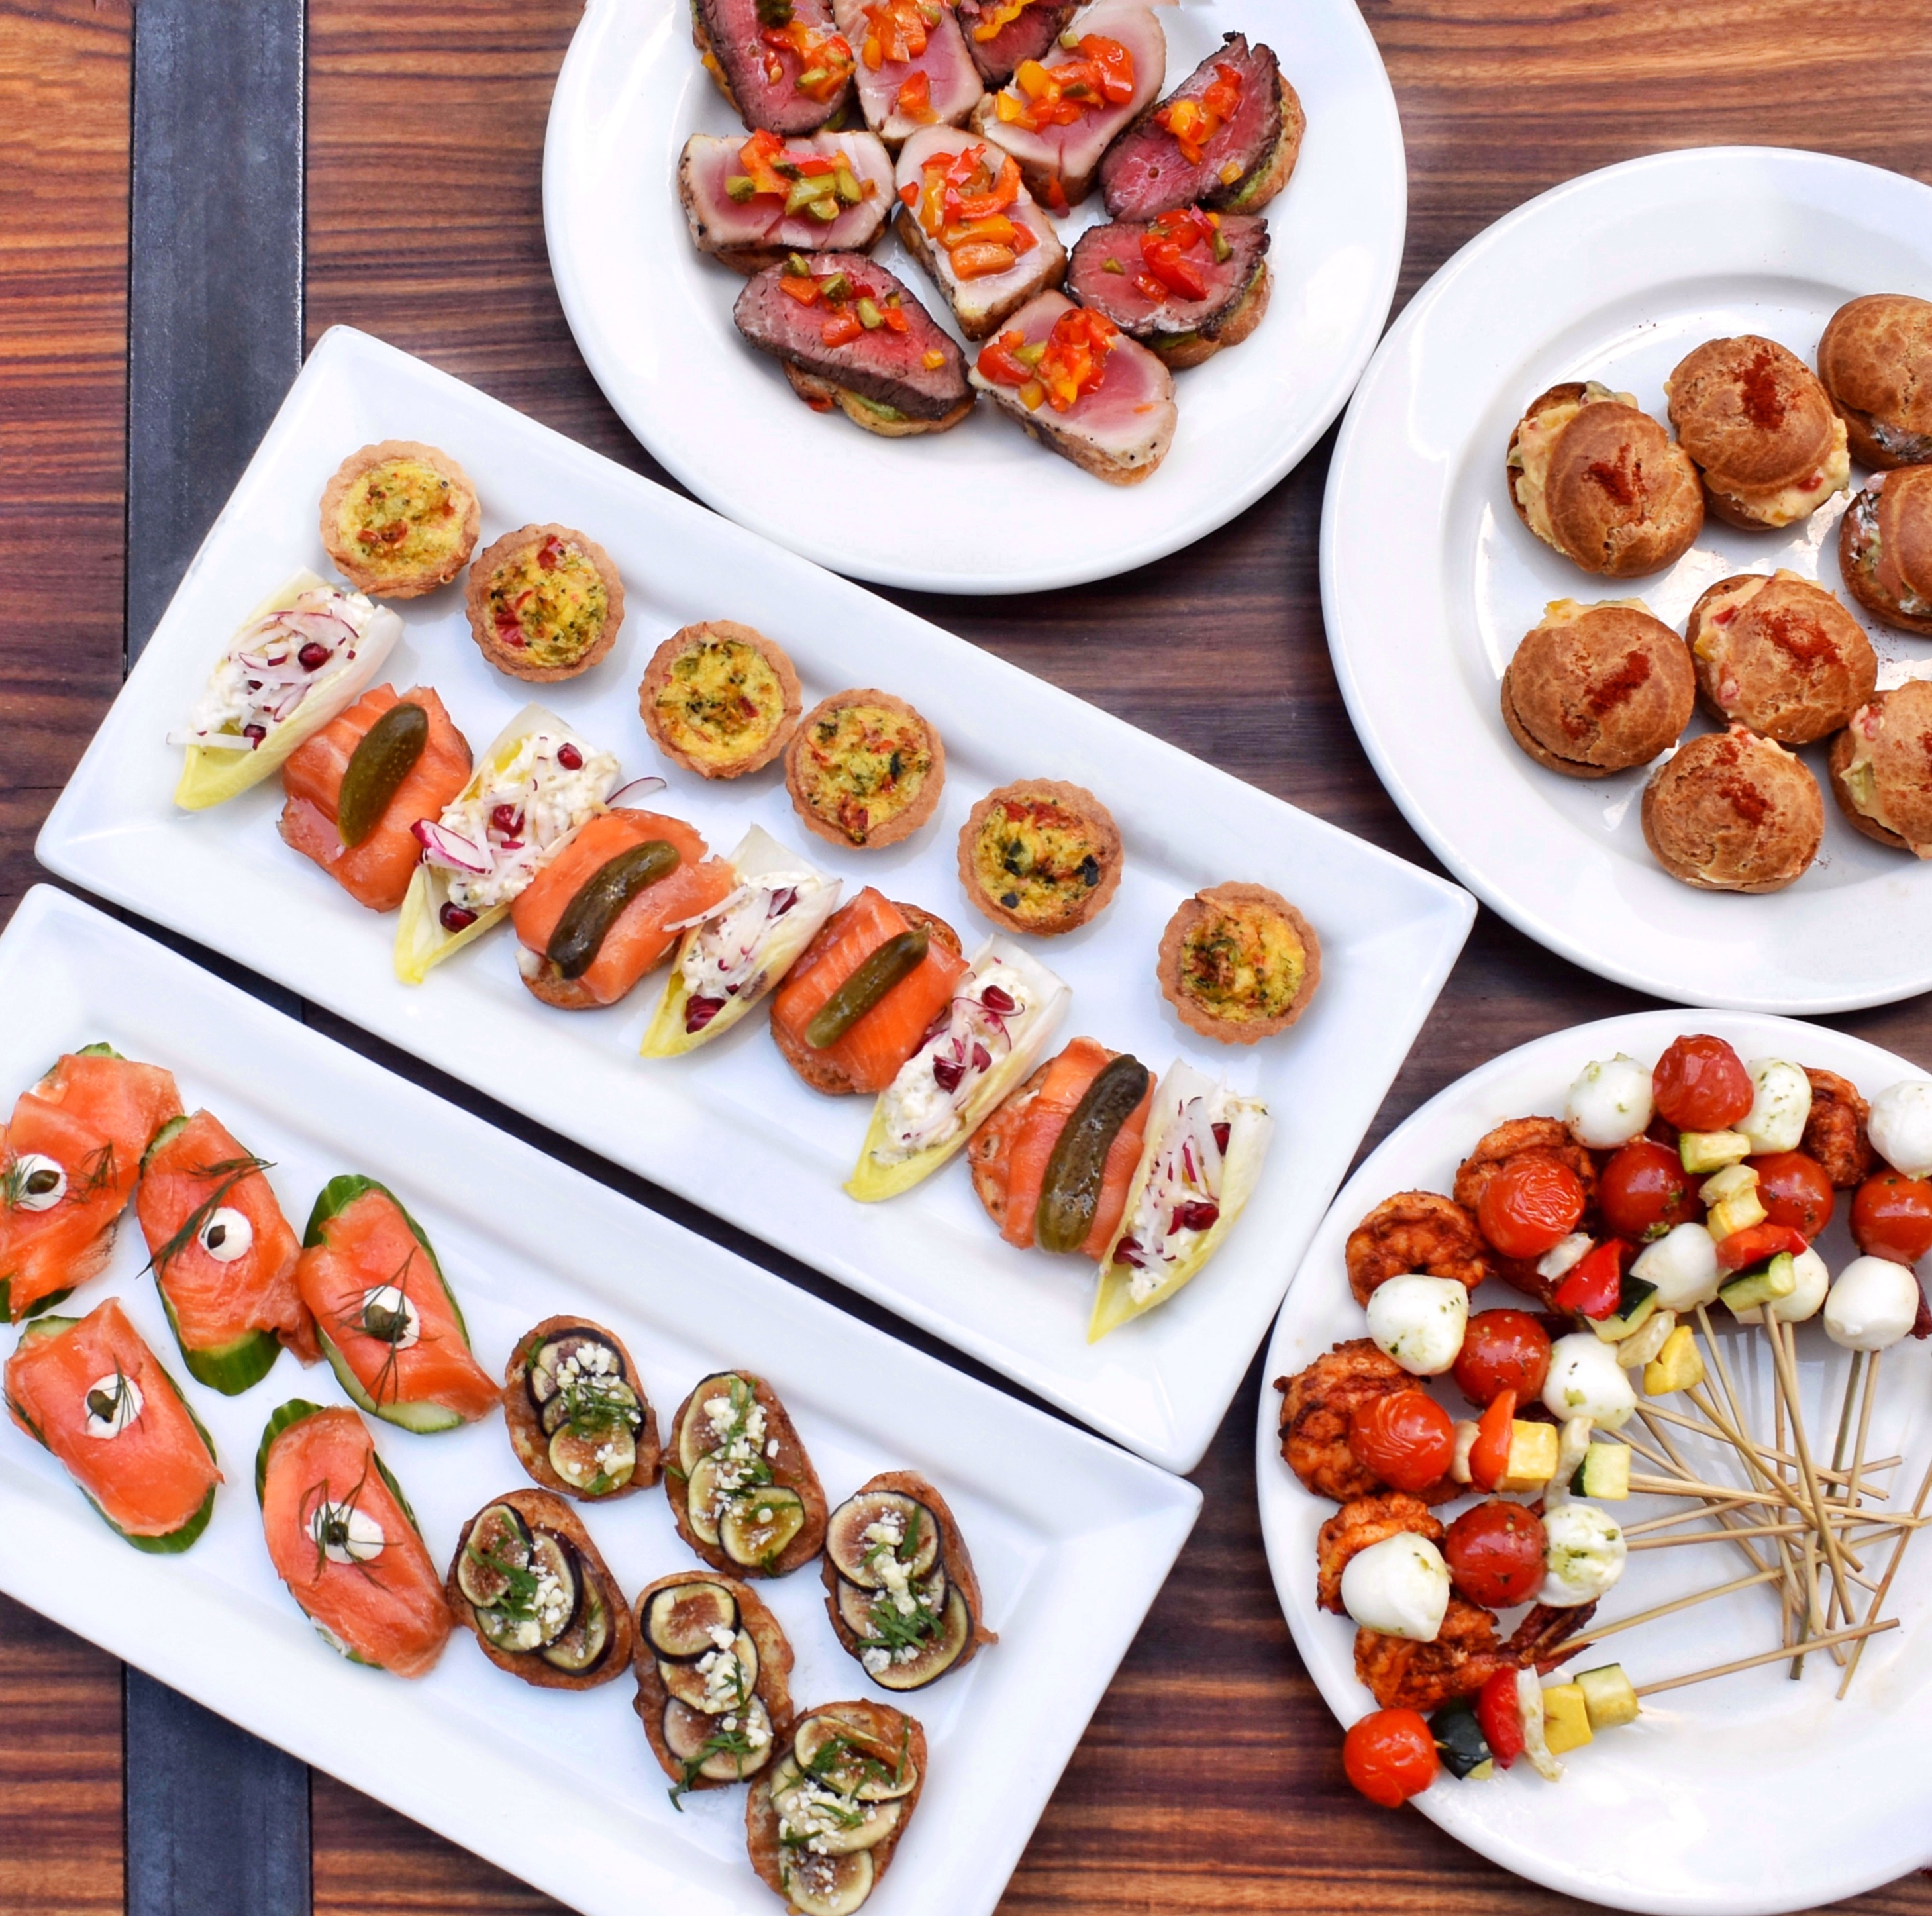 HOLIDAYS' NEW HORS D'OEUVRES